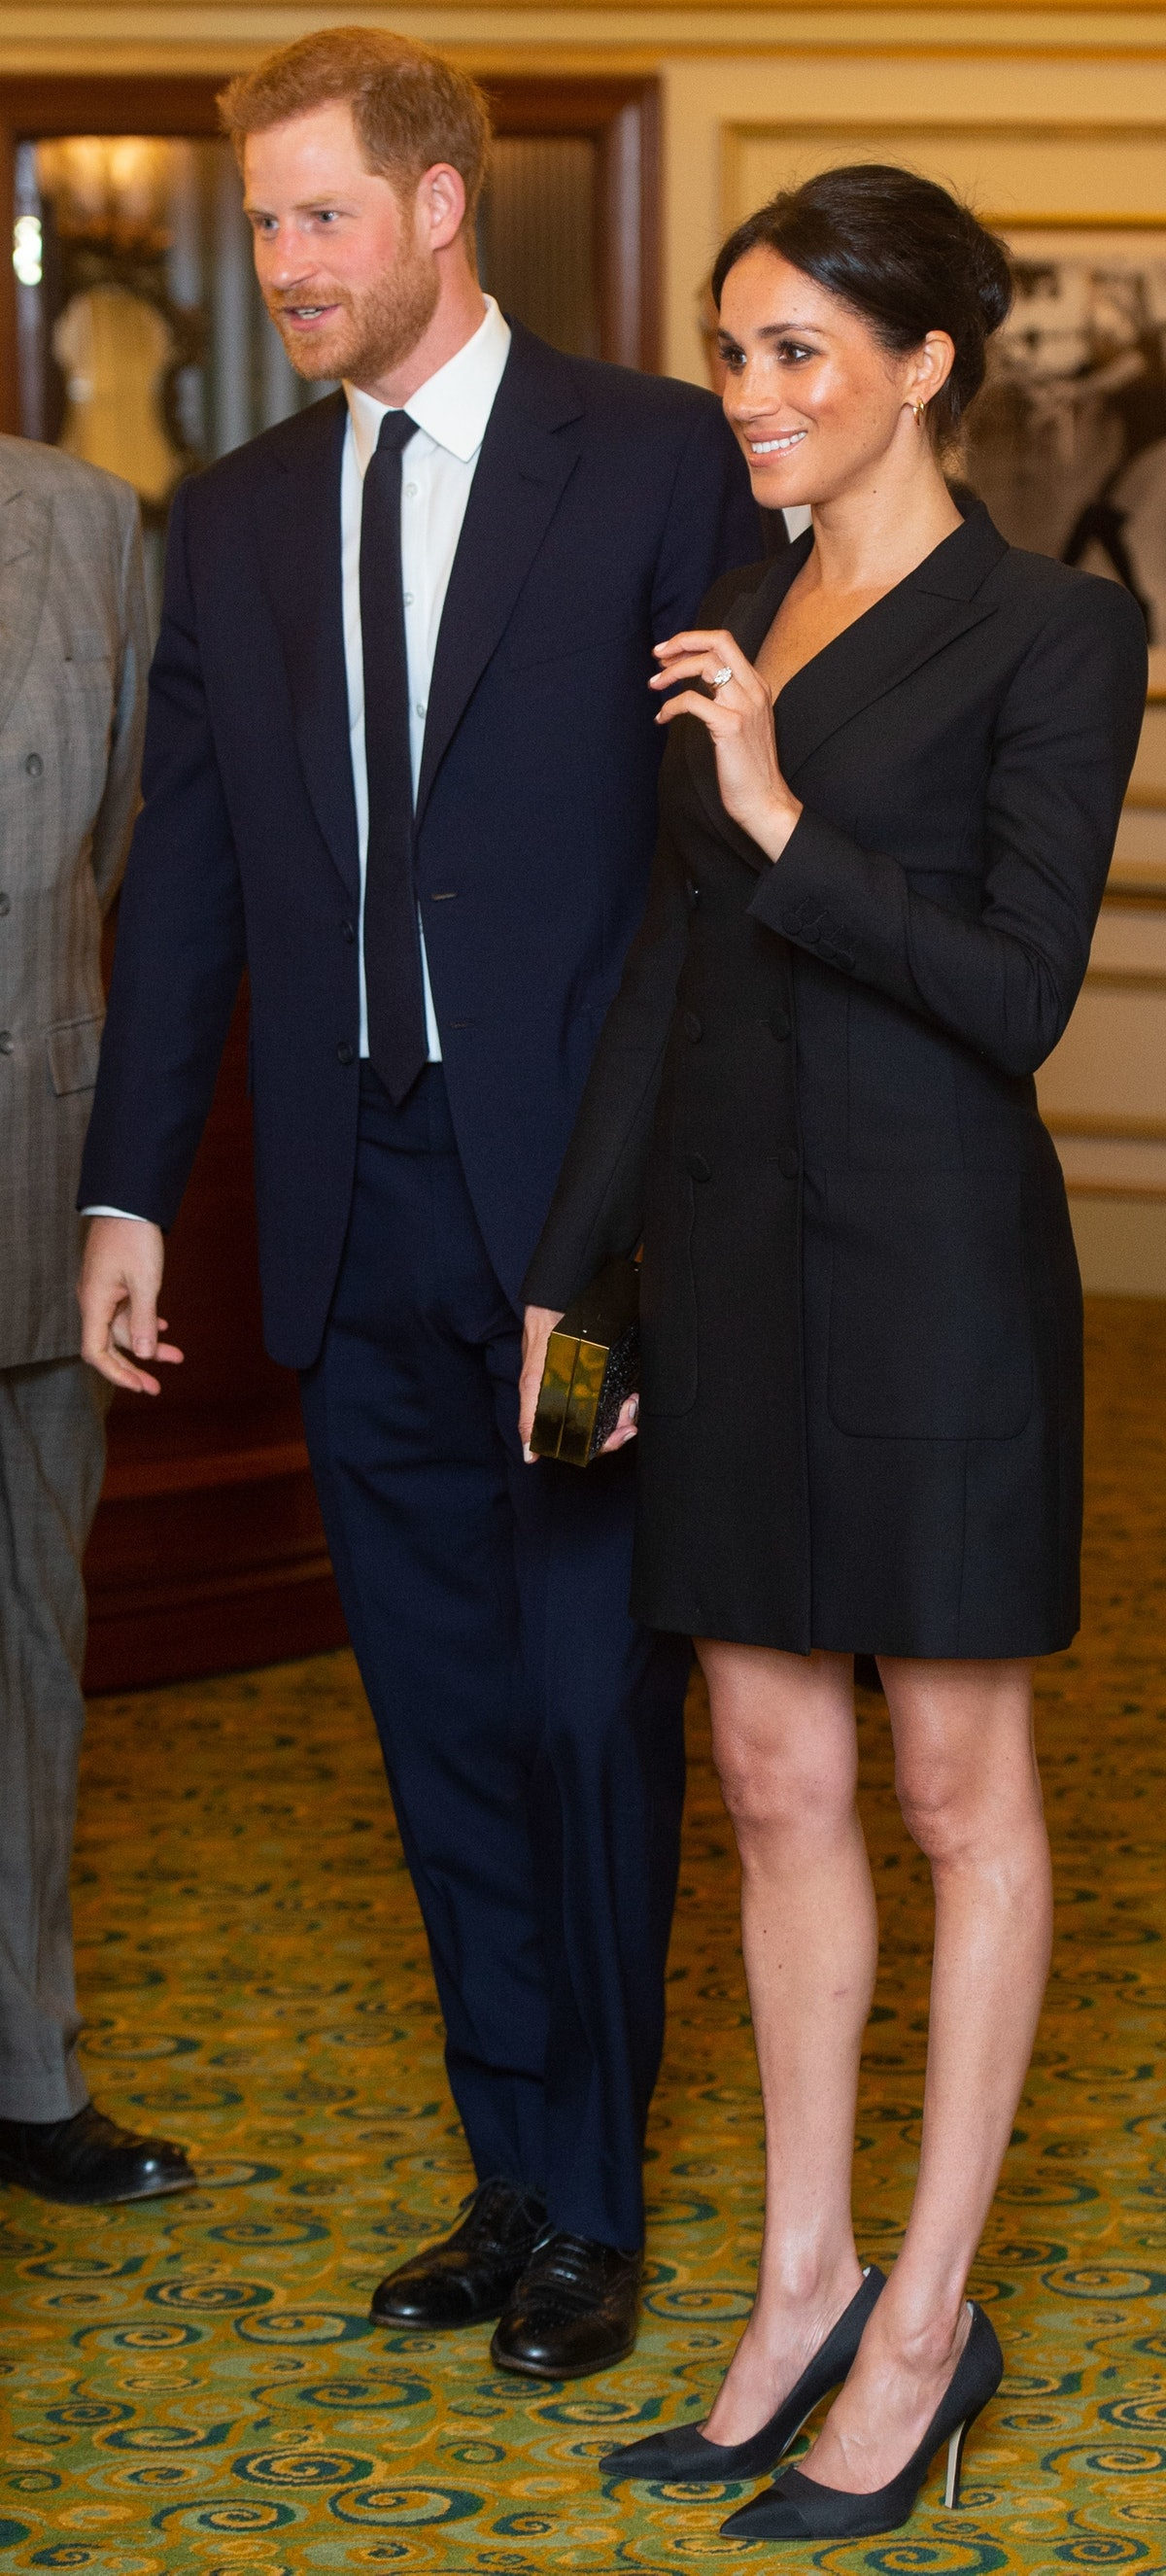 BRITAIN-US-ROYALS-THEATRE-CHARITY